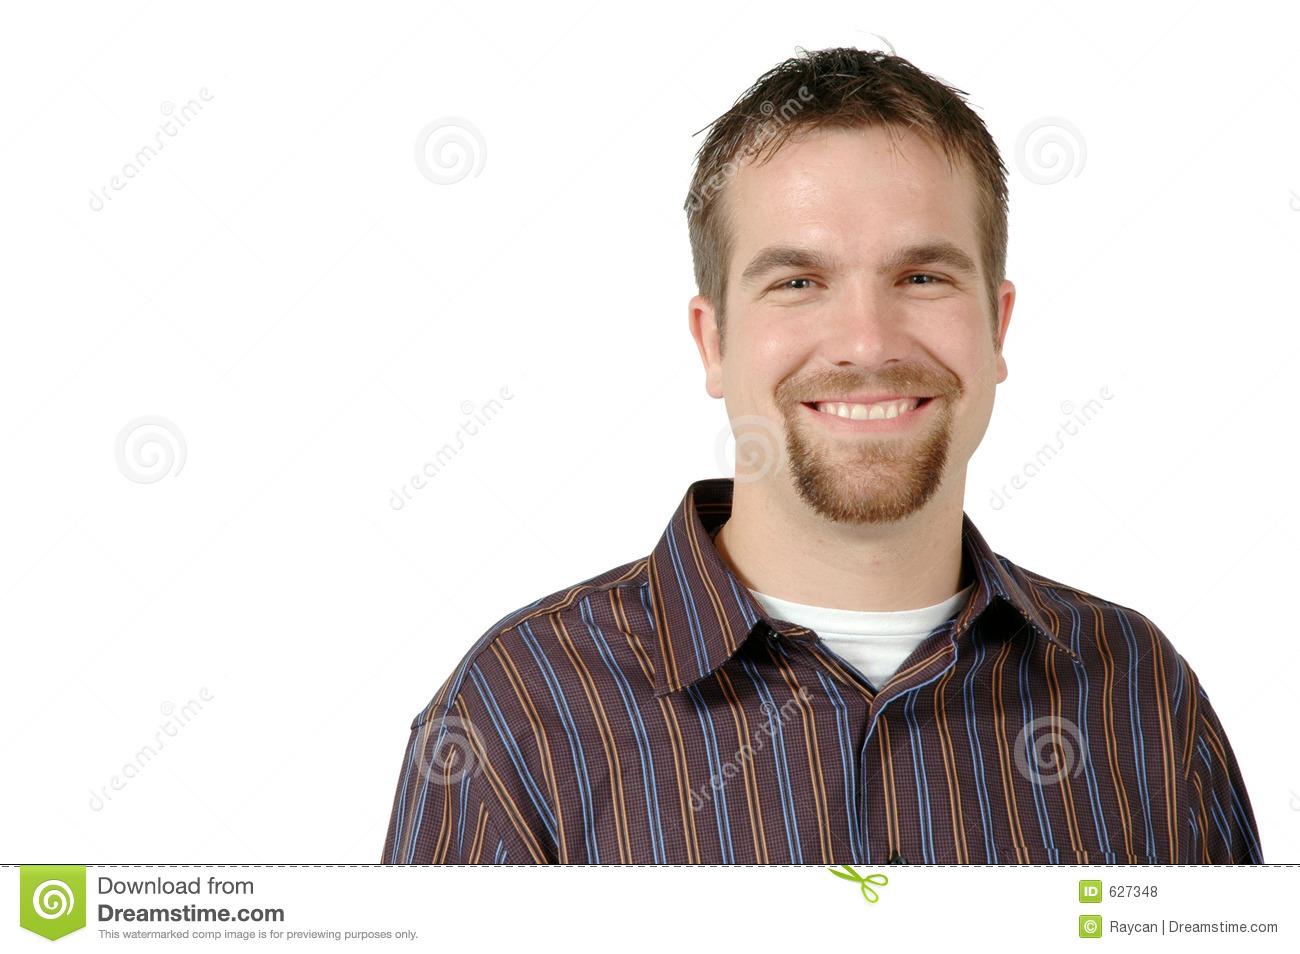 Smiling Man Royalty Free Stock Photos - Image: 627348